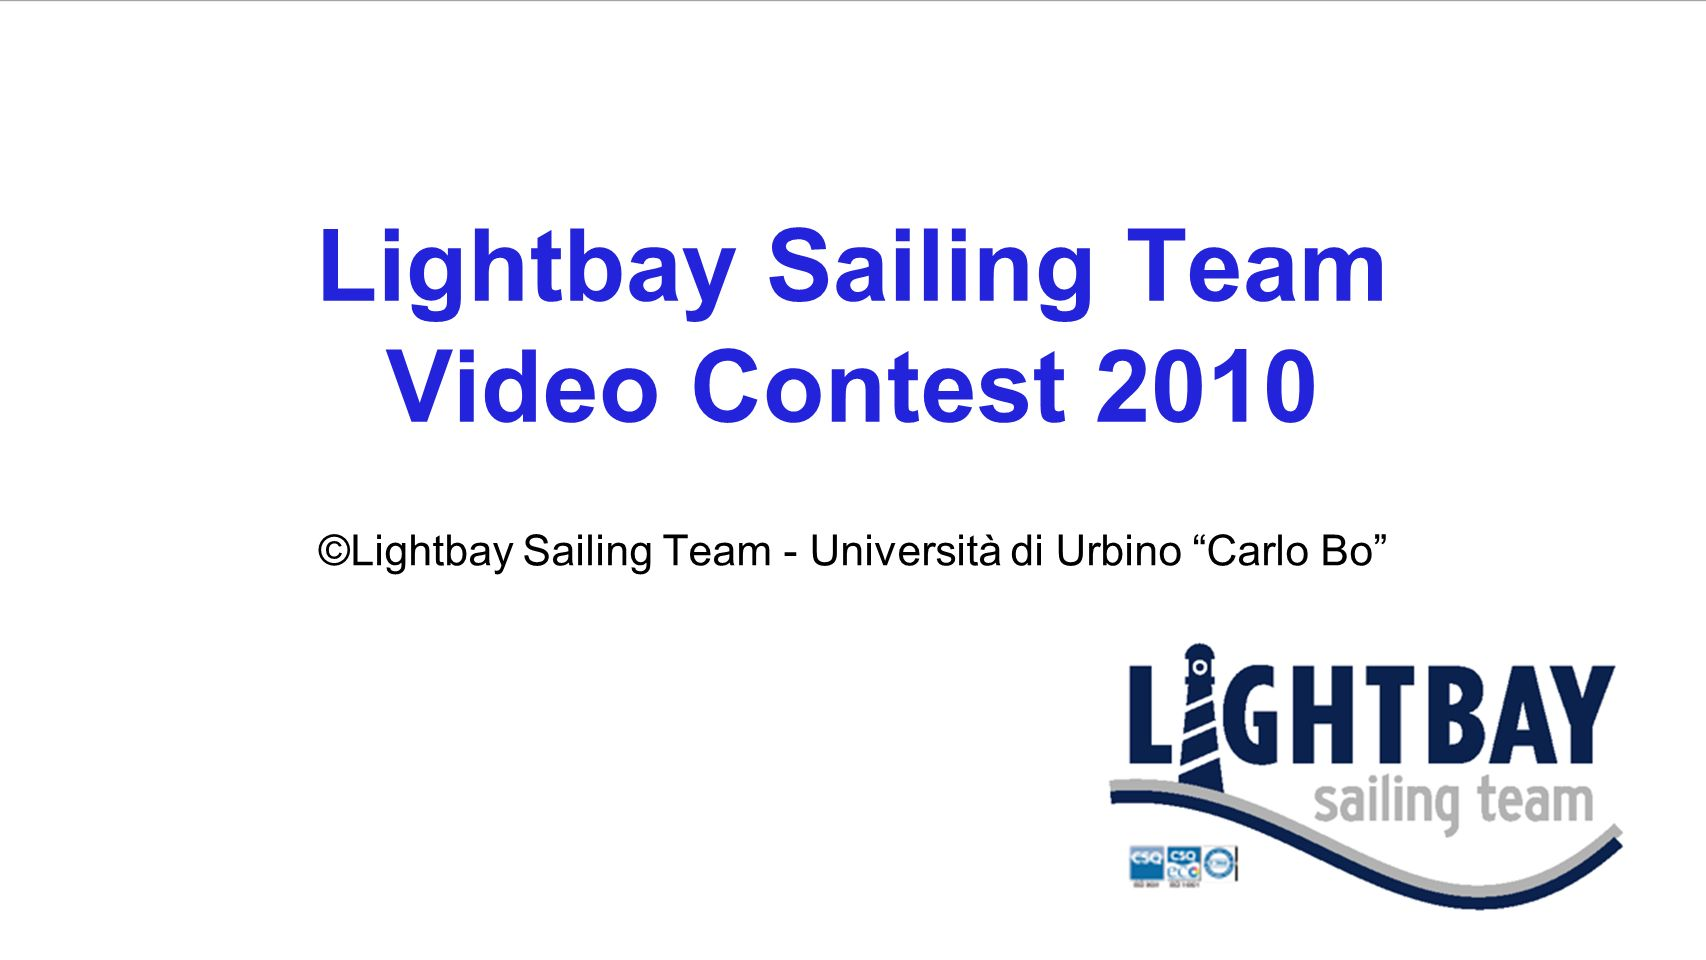 Lightbay Sailing Team Video Contest 2010